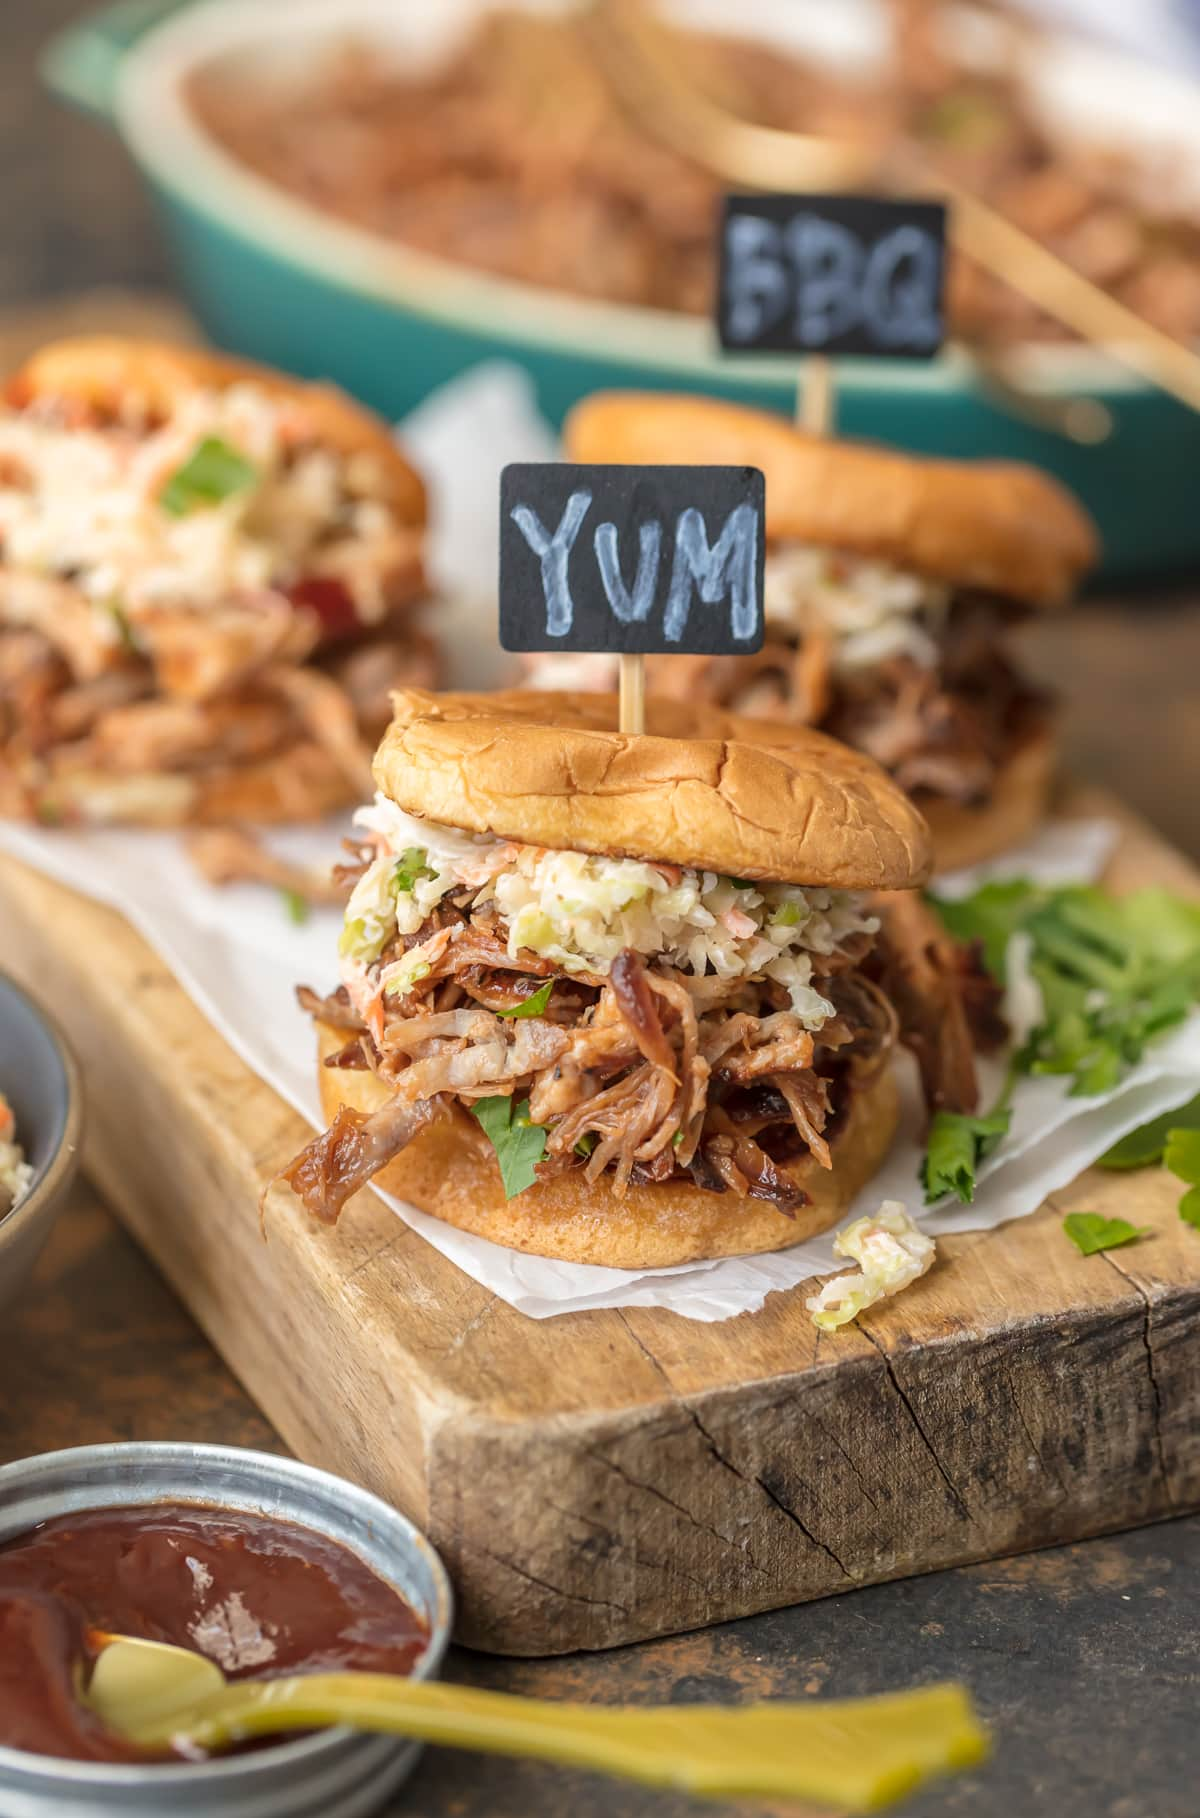 Crockpot BBQ Pork Sandwiches on serving board